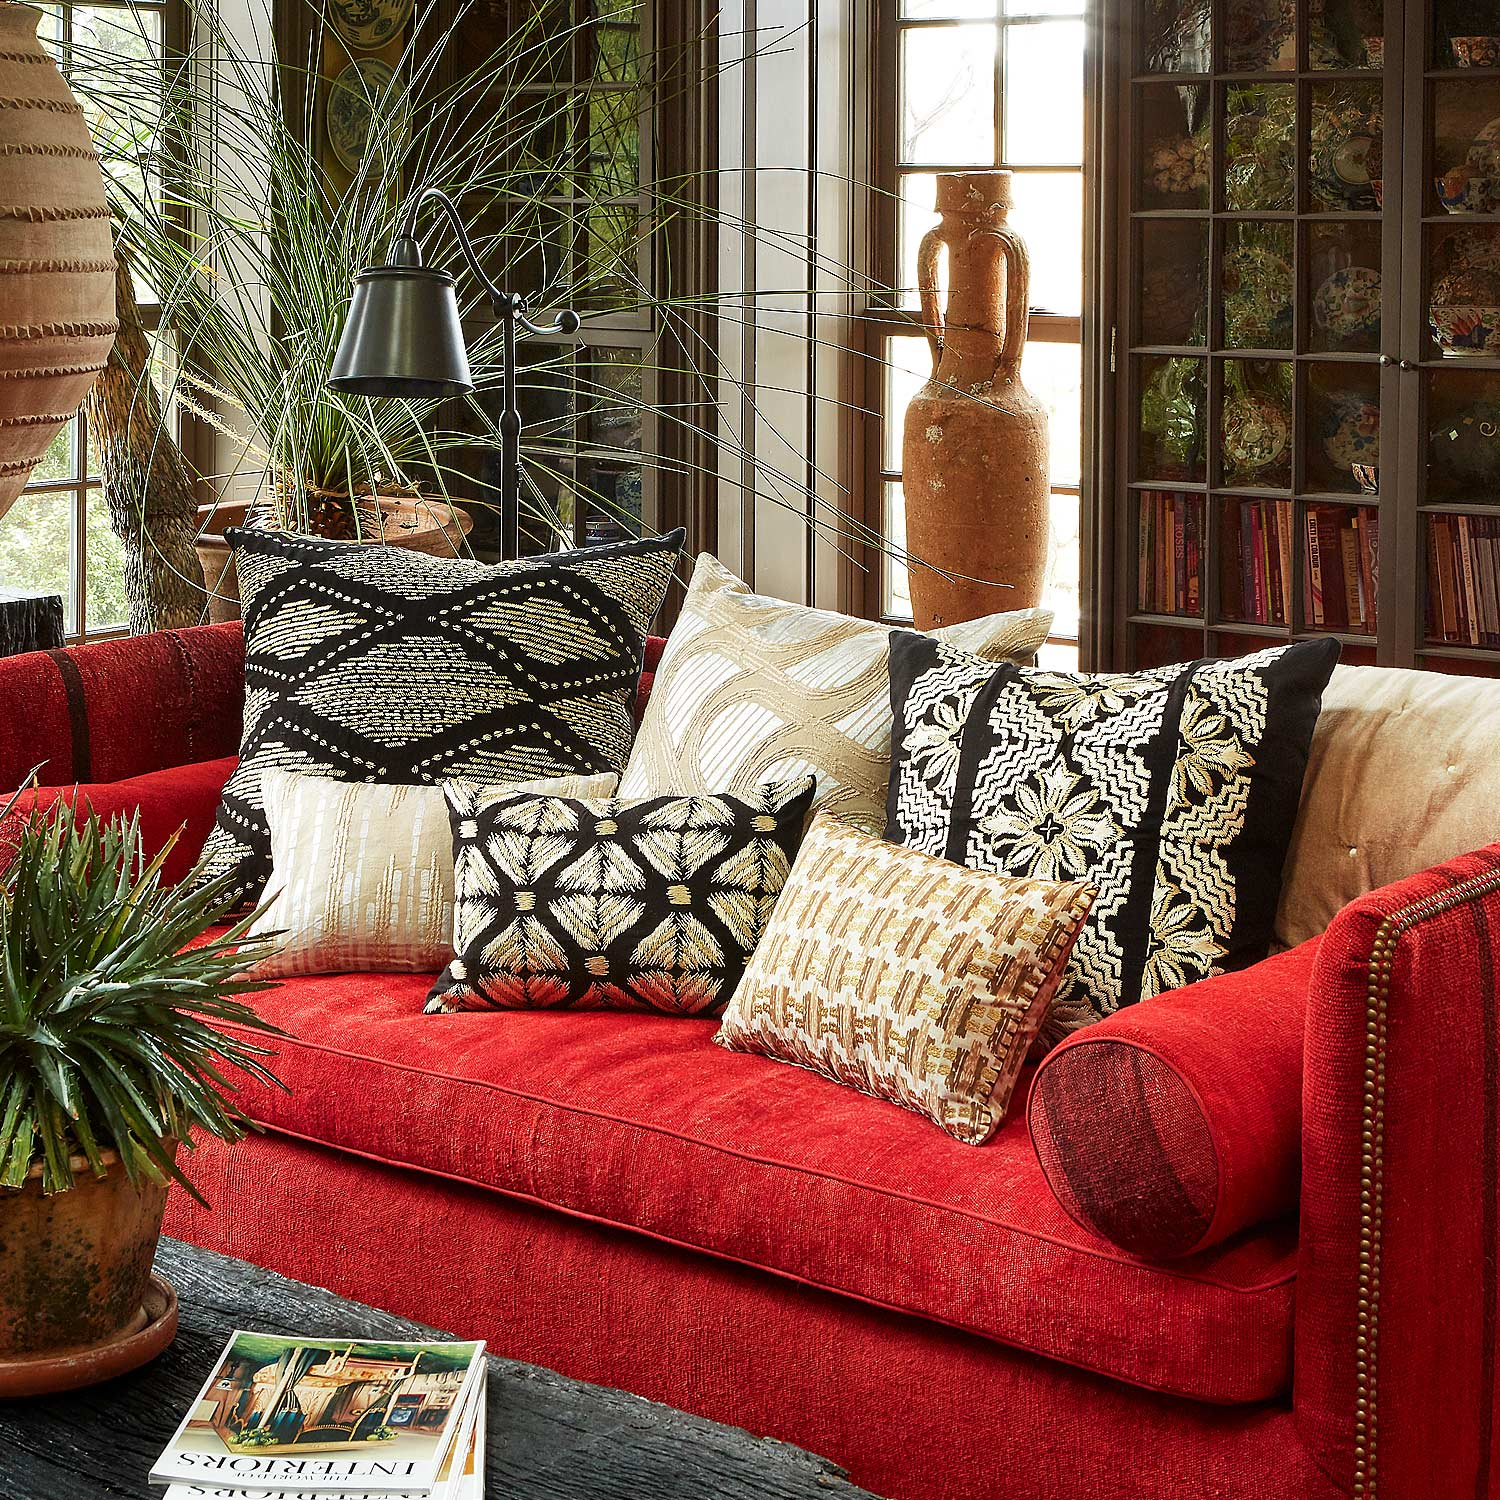 Shop Black and Neutral Decorative Pillows by John Robshaw  at Fig Linens